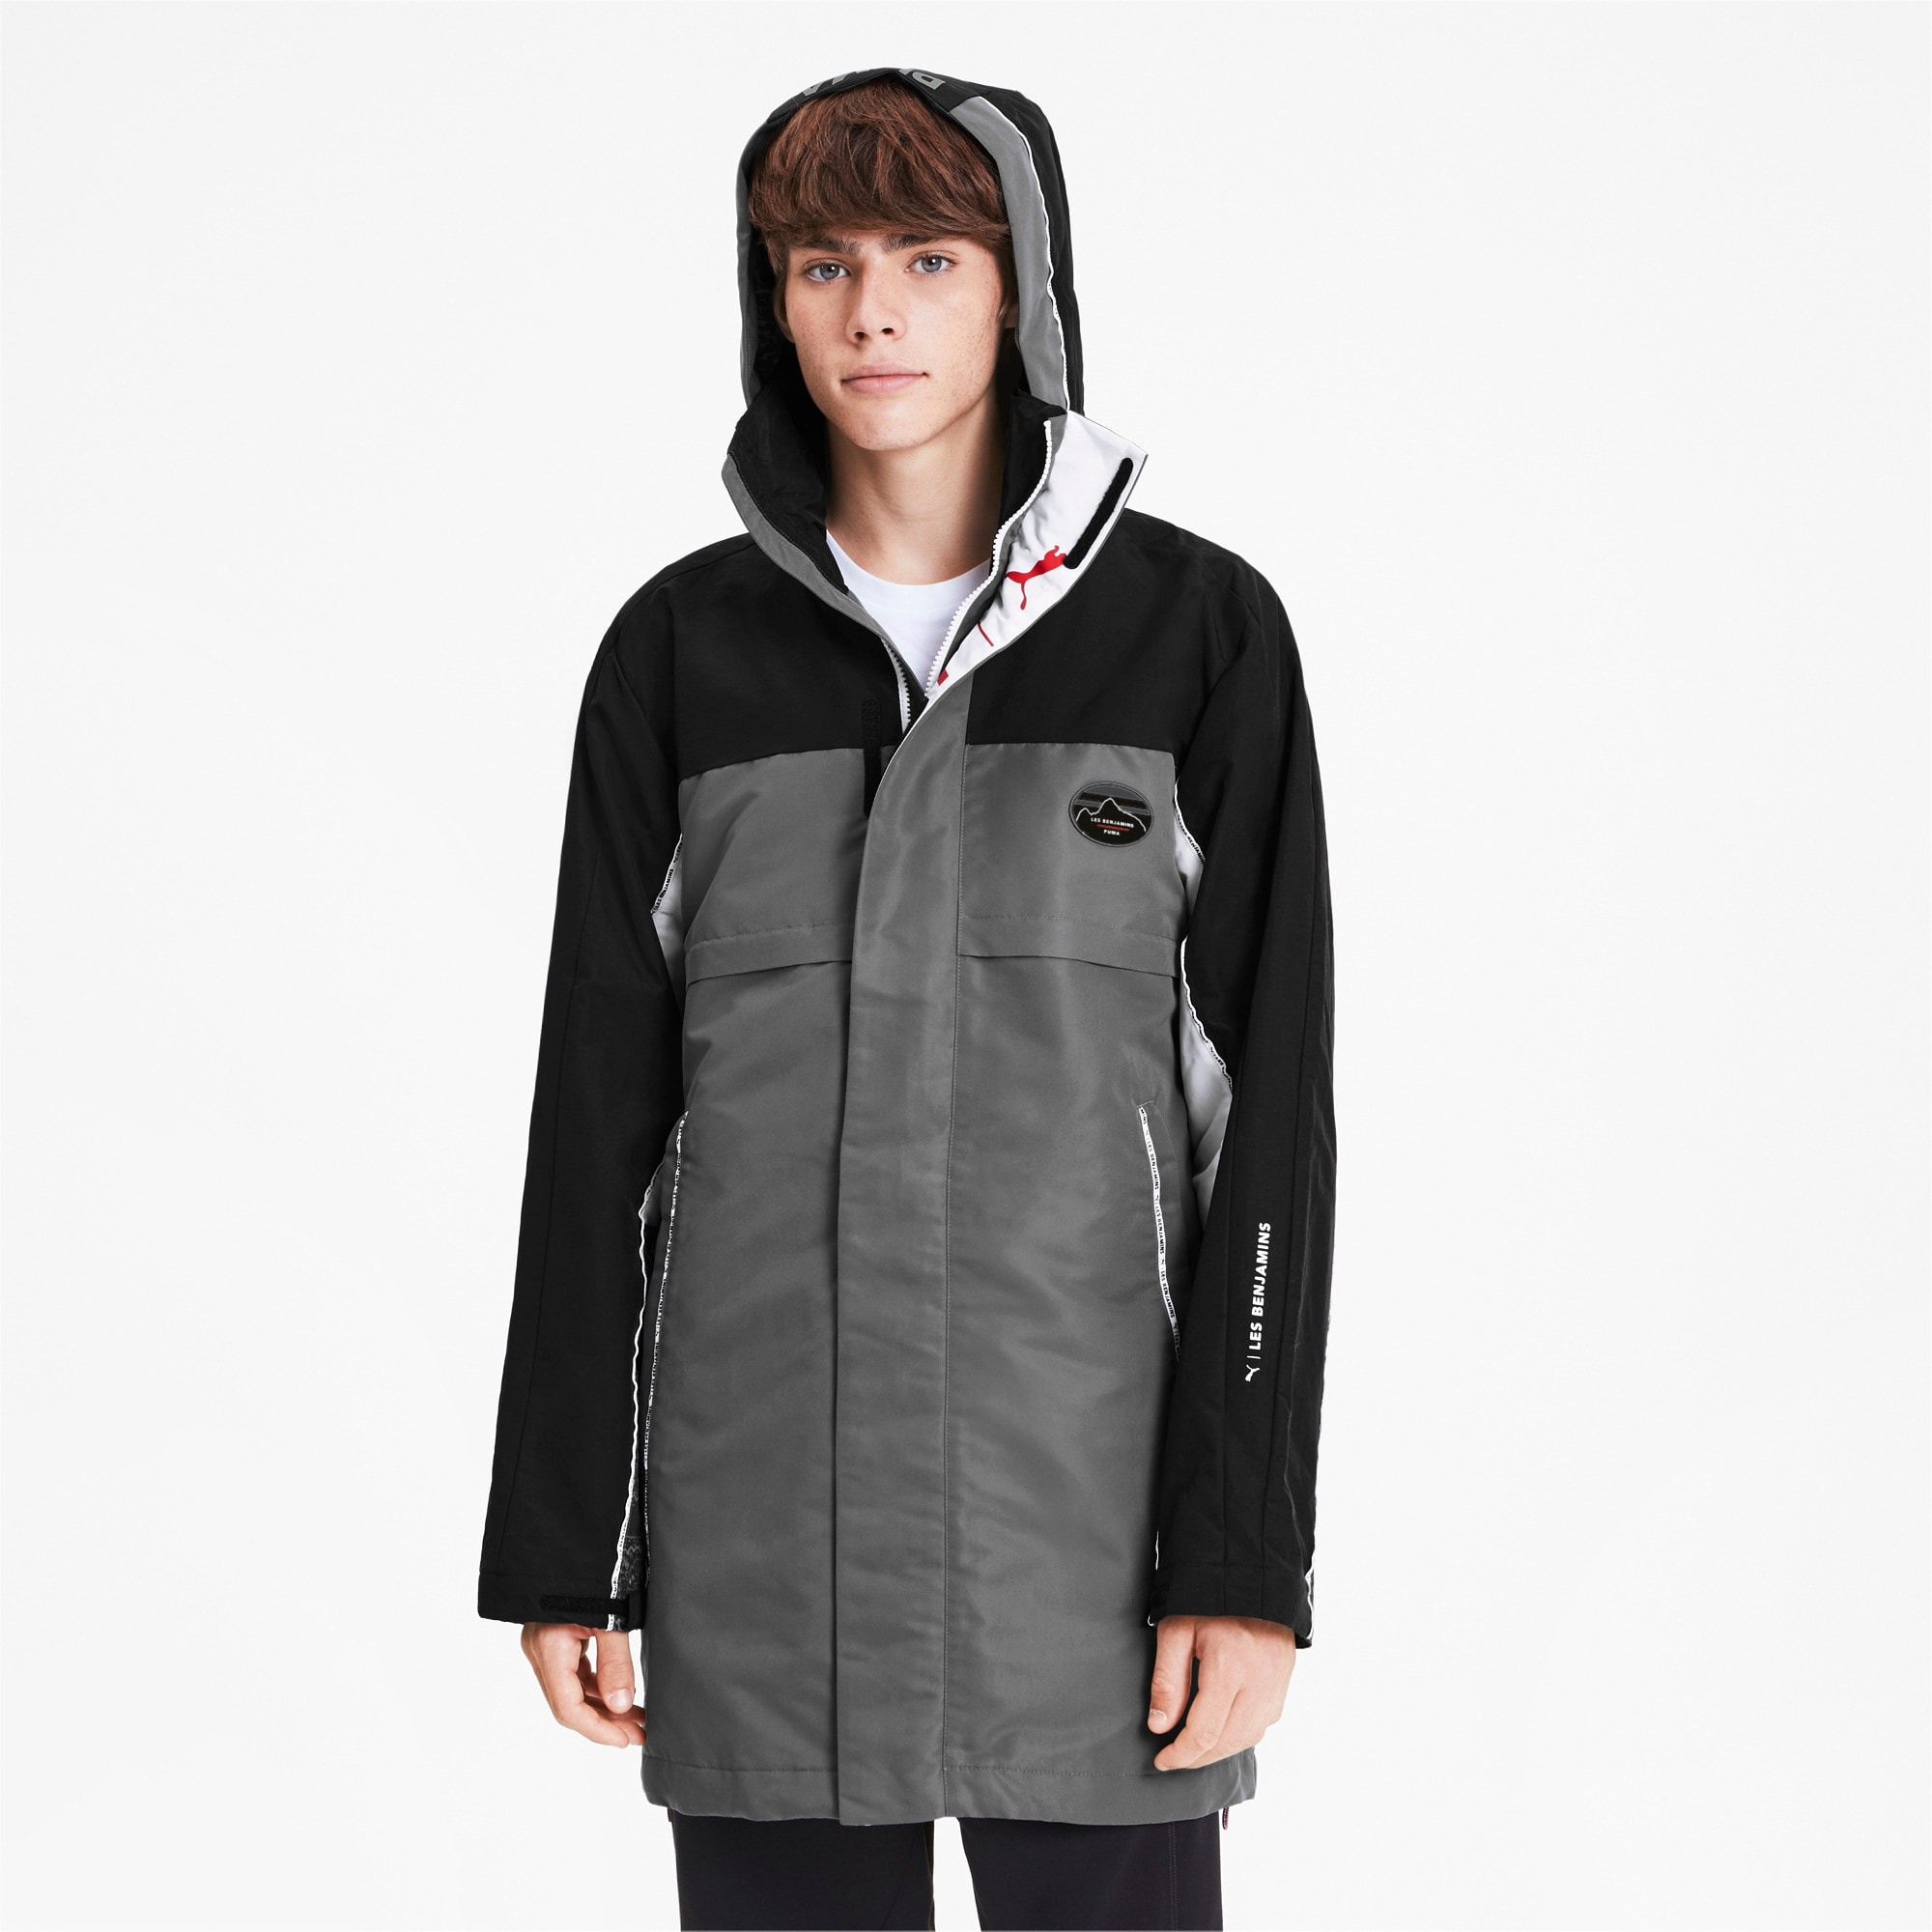 Thumbnail 2 of PUMA x LES BENJAMINS Men's Storm Jacket, Puma Black, medium